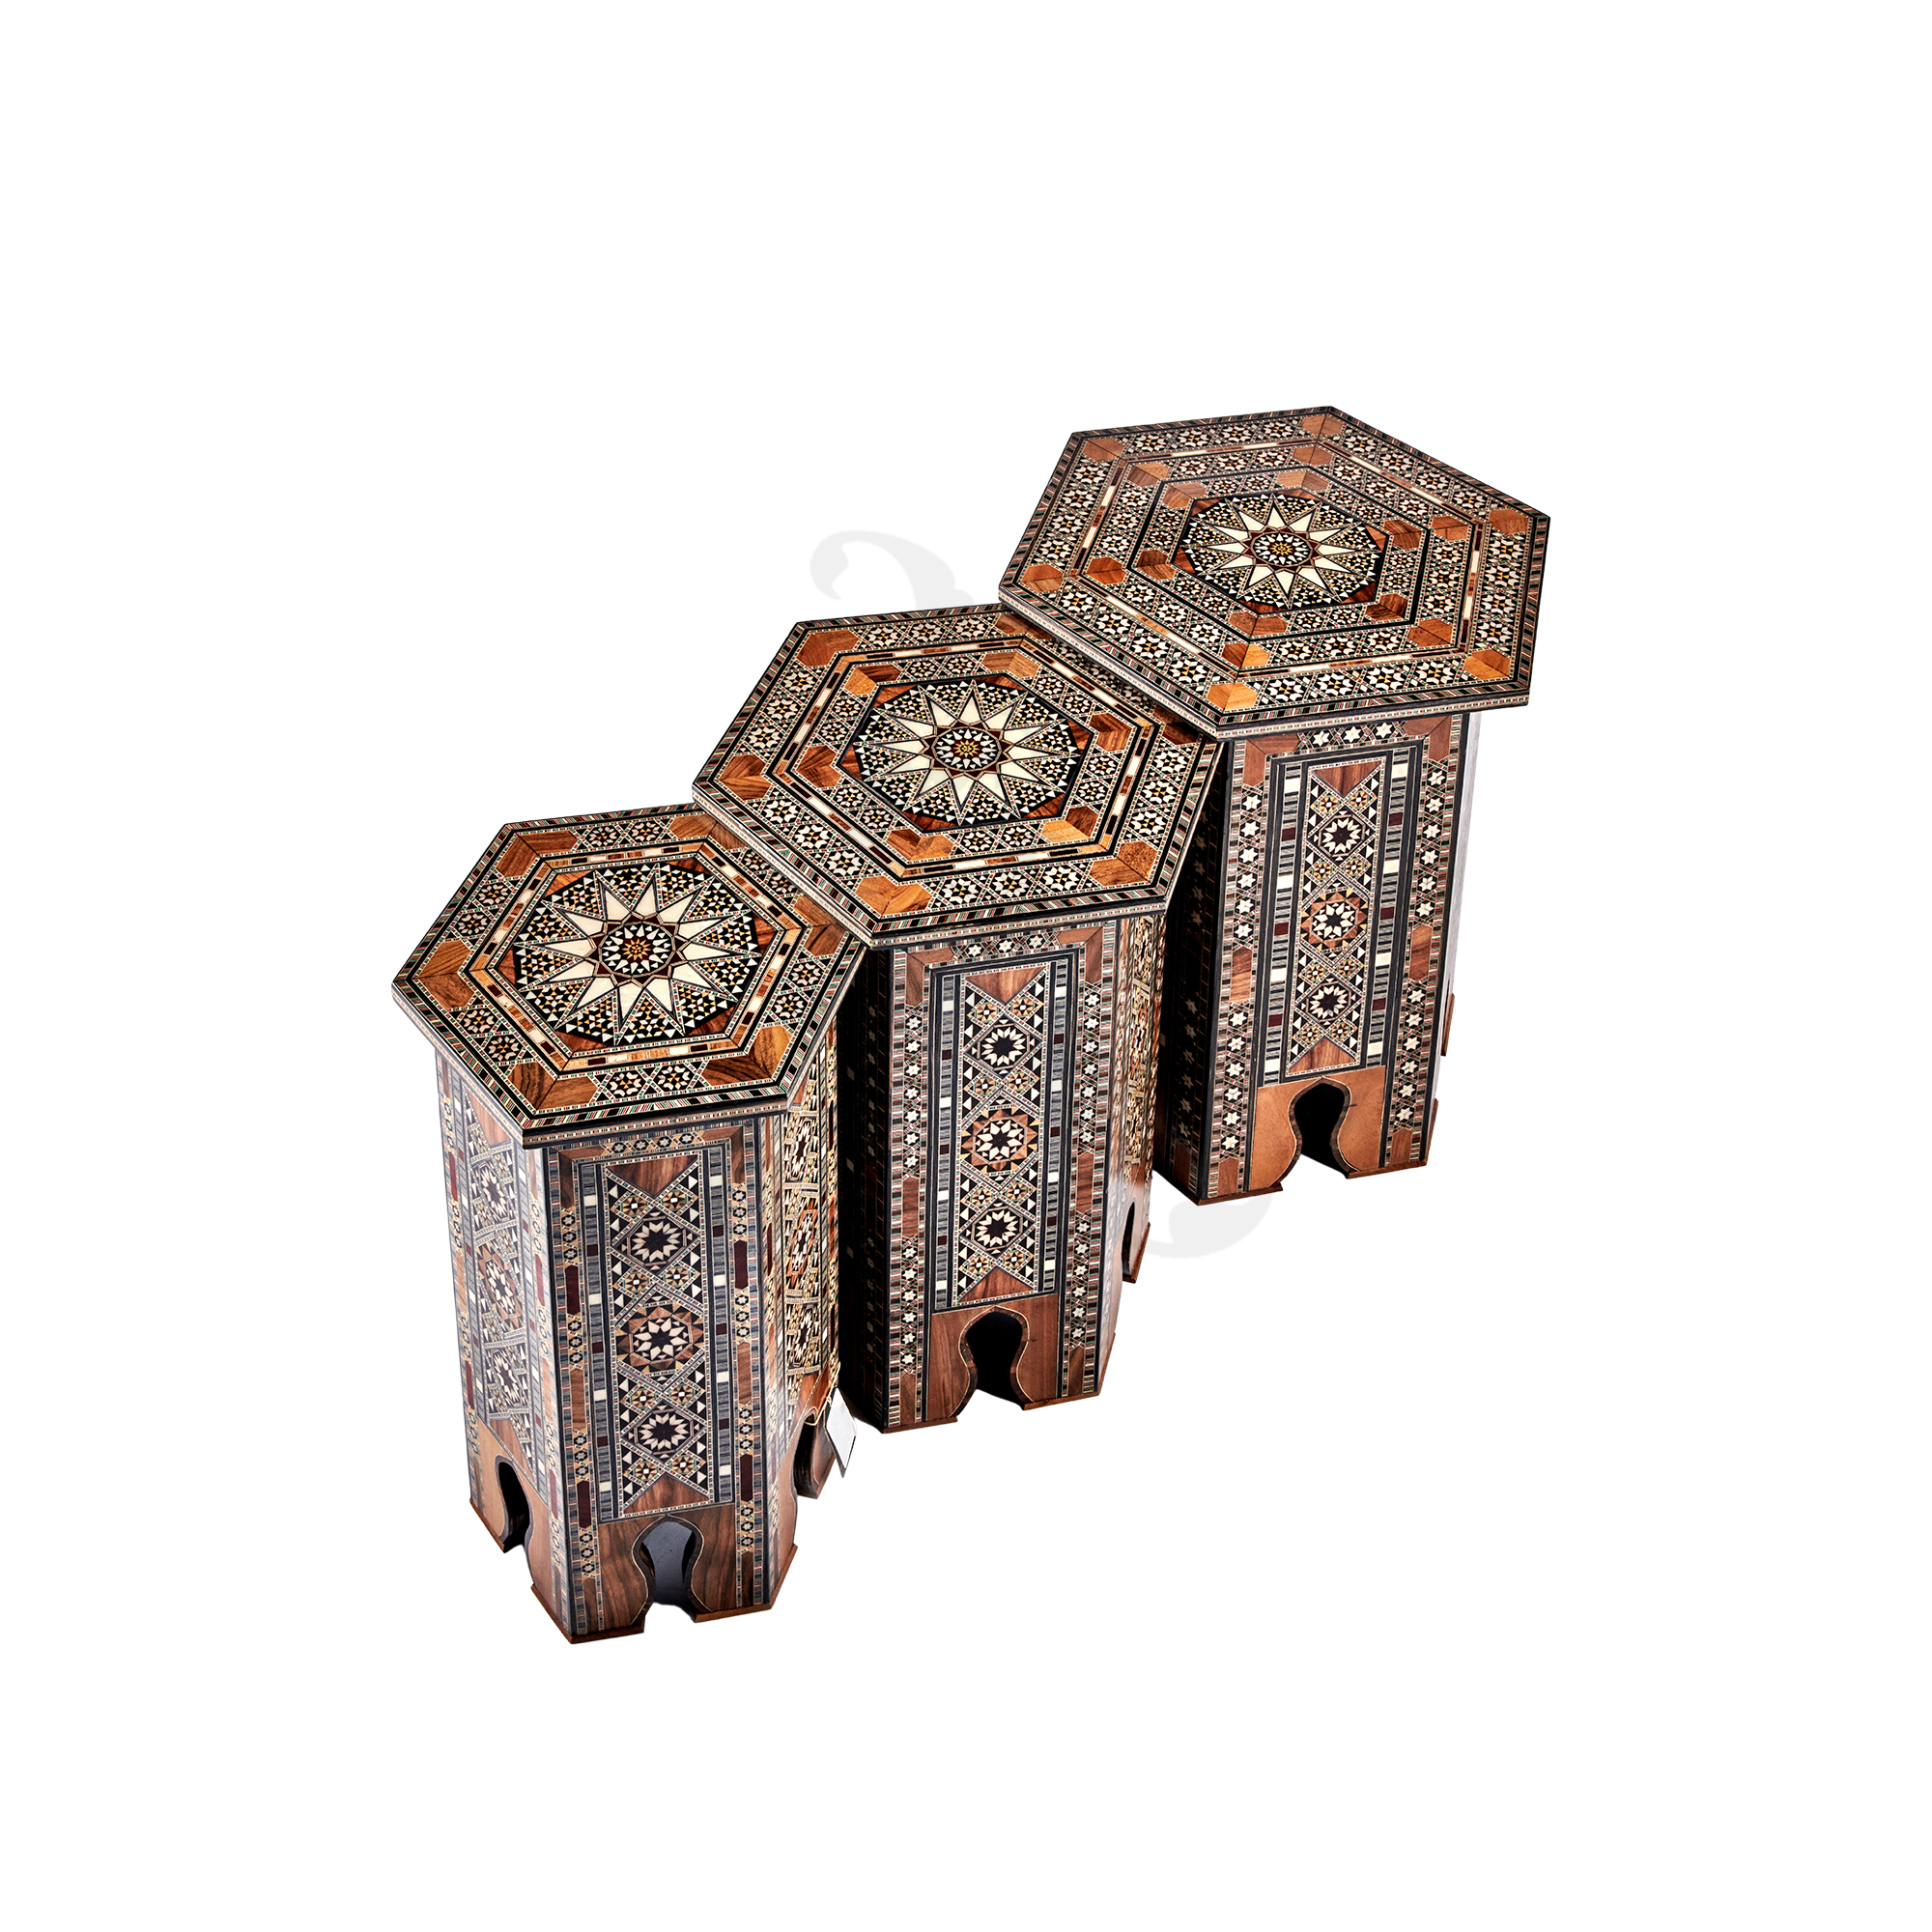 Buy Set of 3 Moroccan Tables